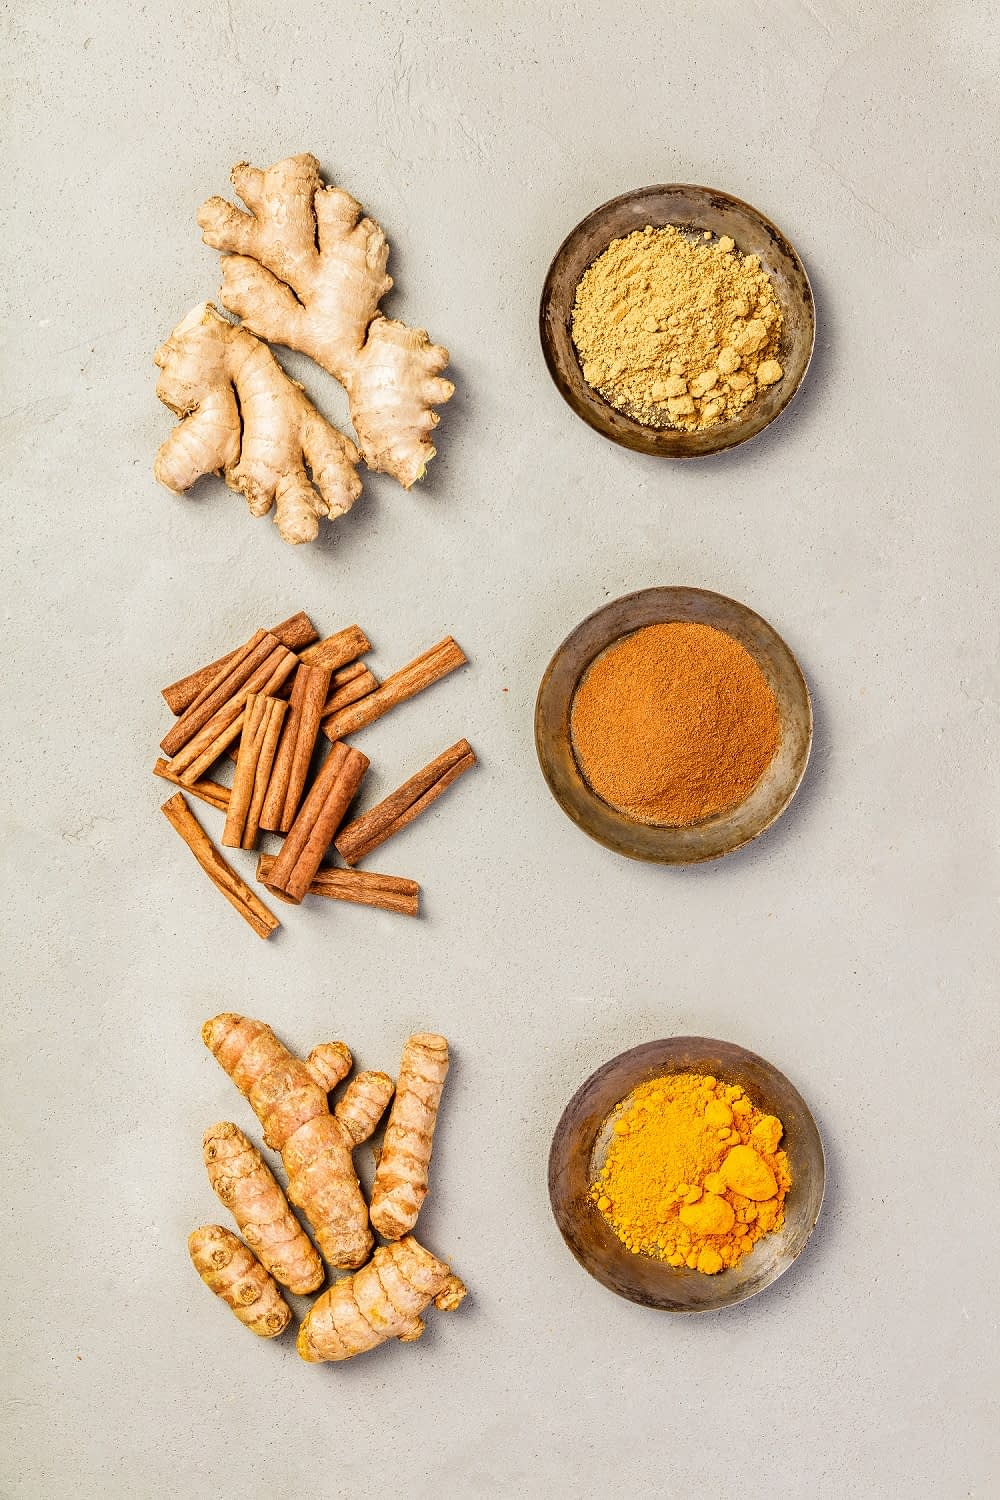 ginger turmeric and cinnamon